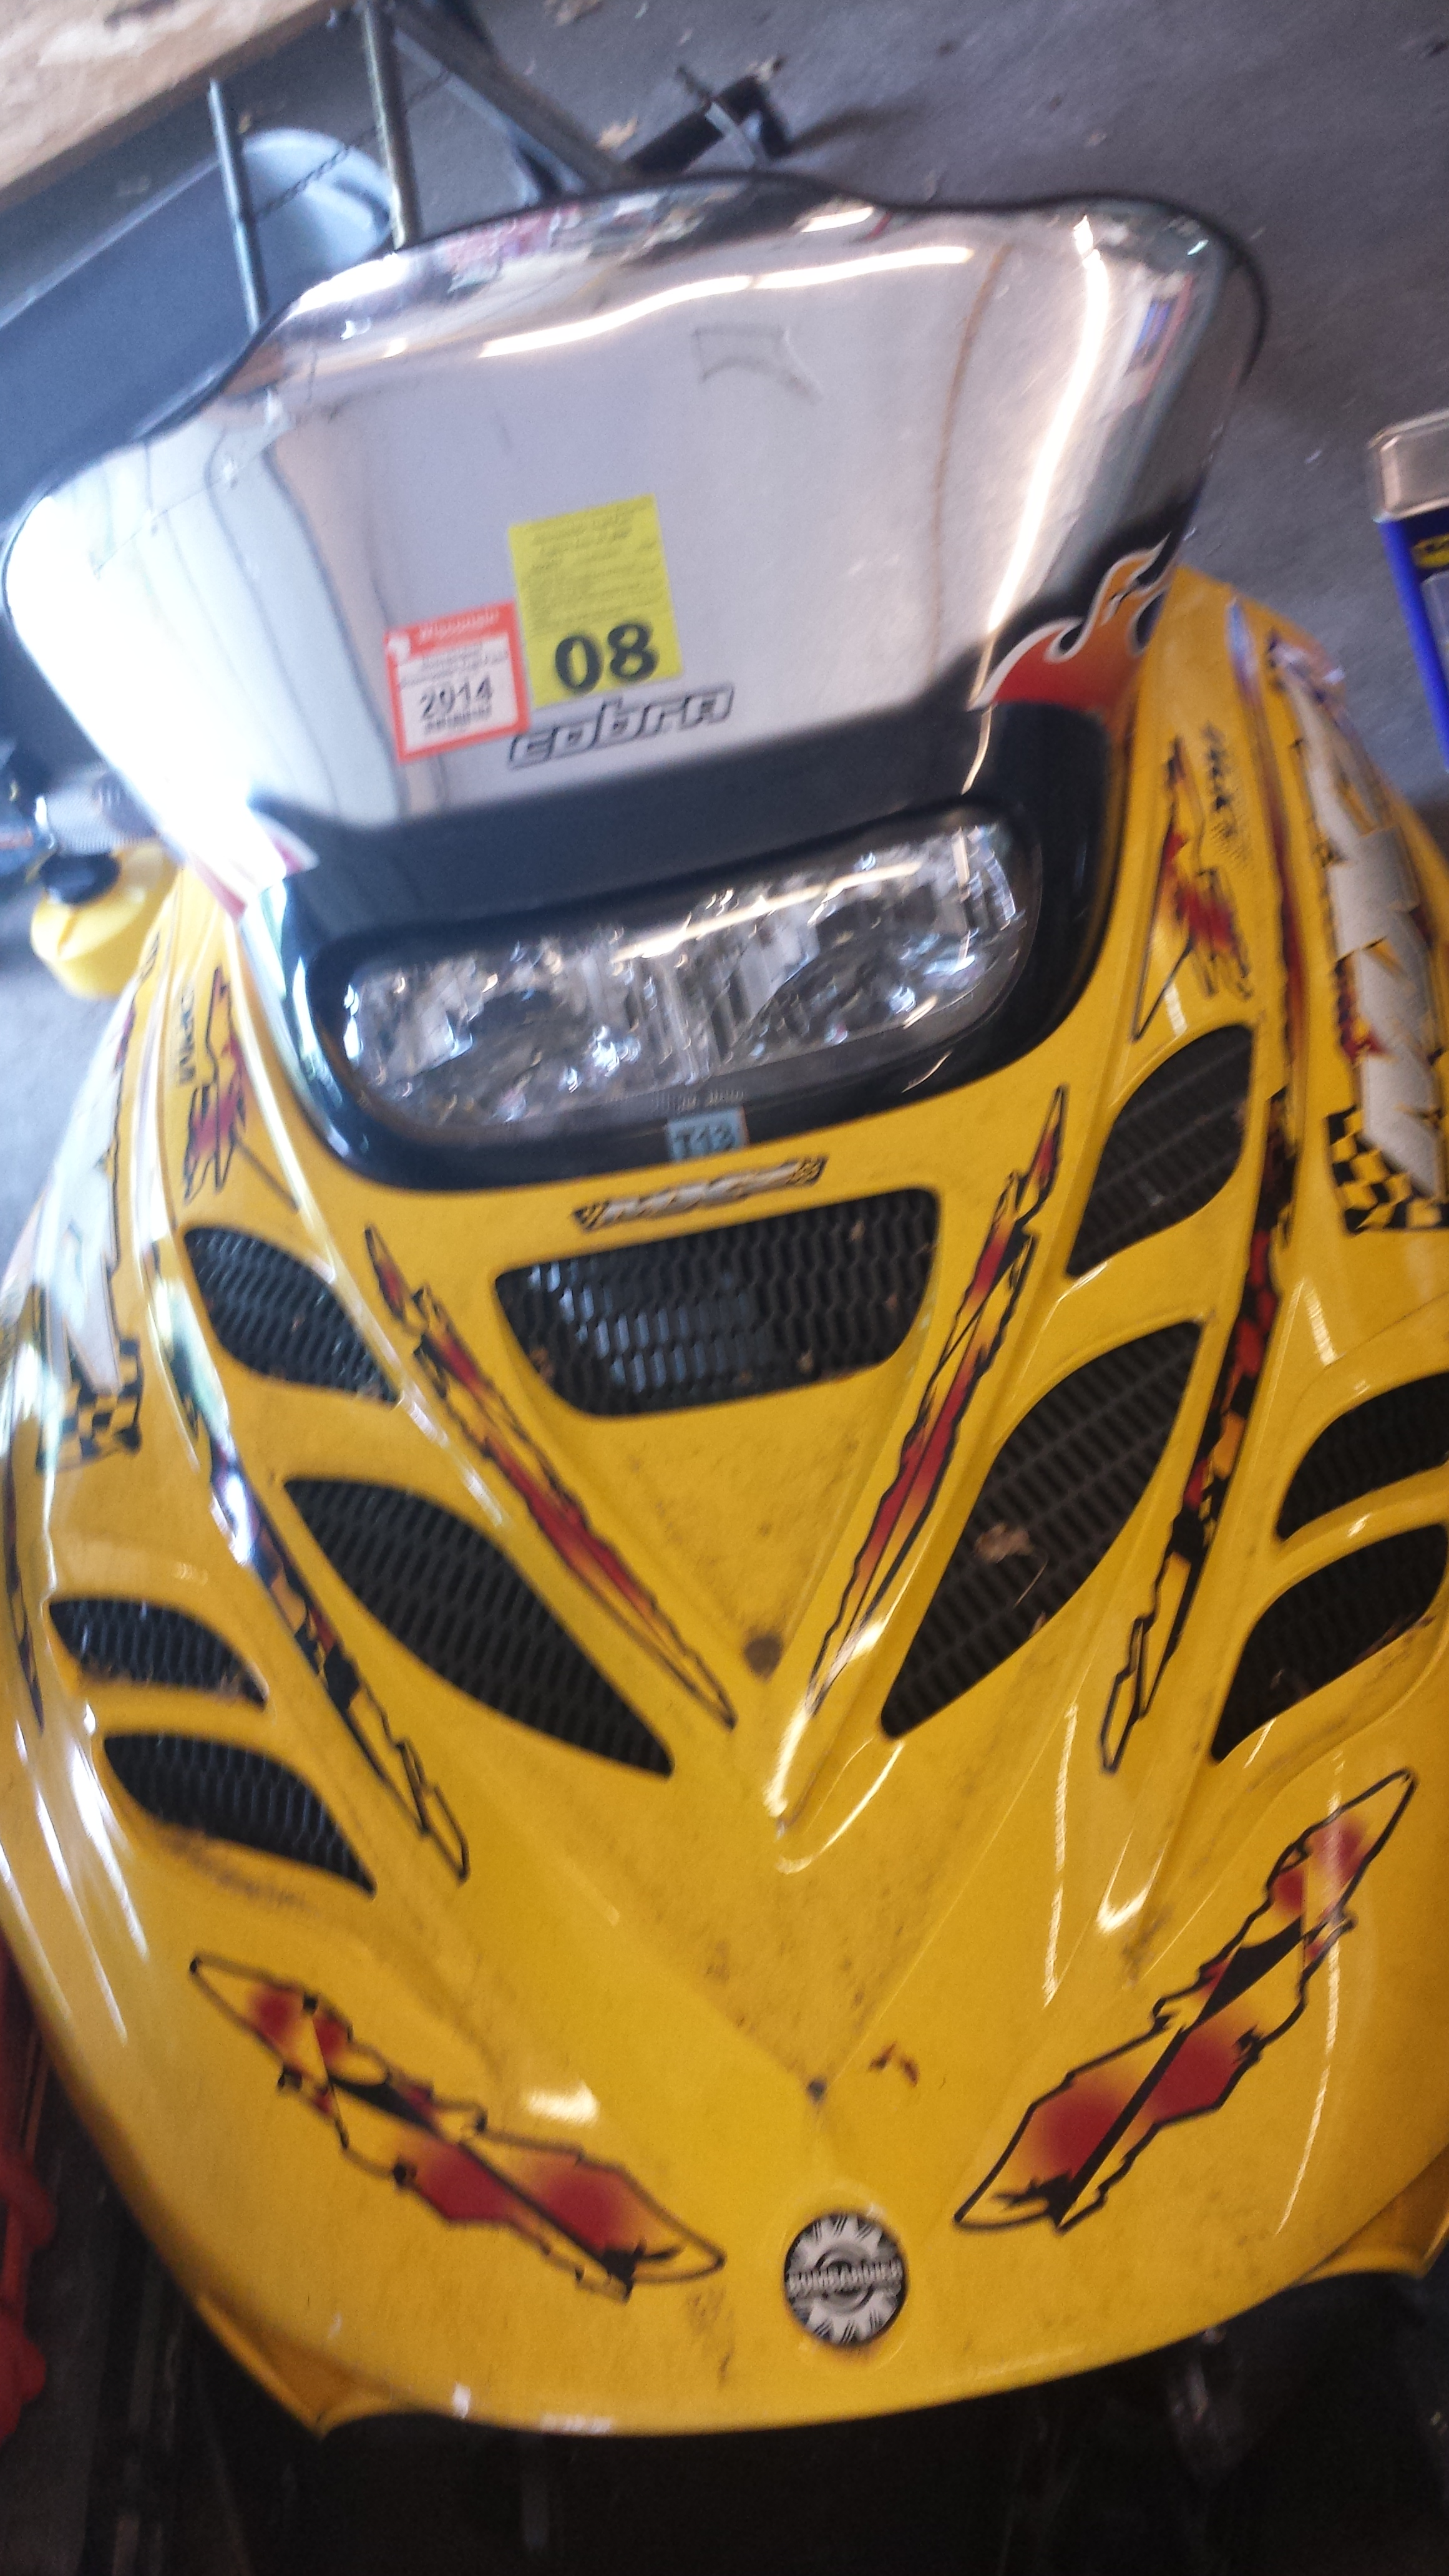 Parts available from 2001 Ski Doo MXZ 800 Yellow